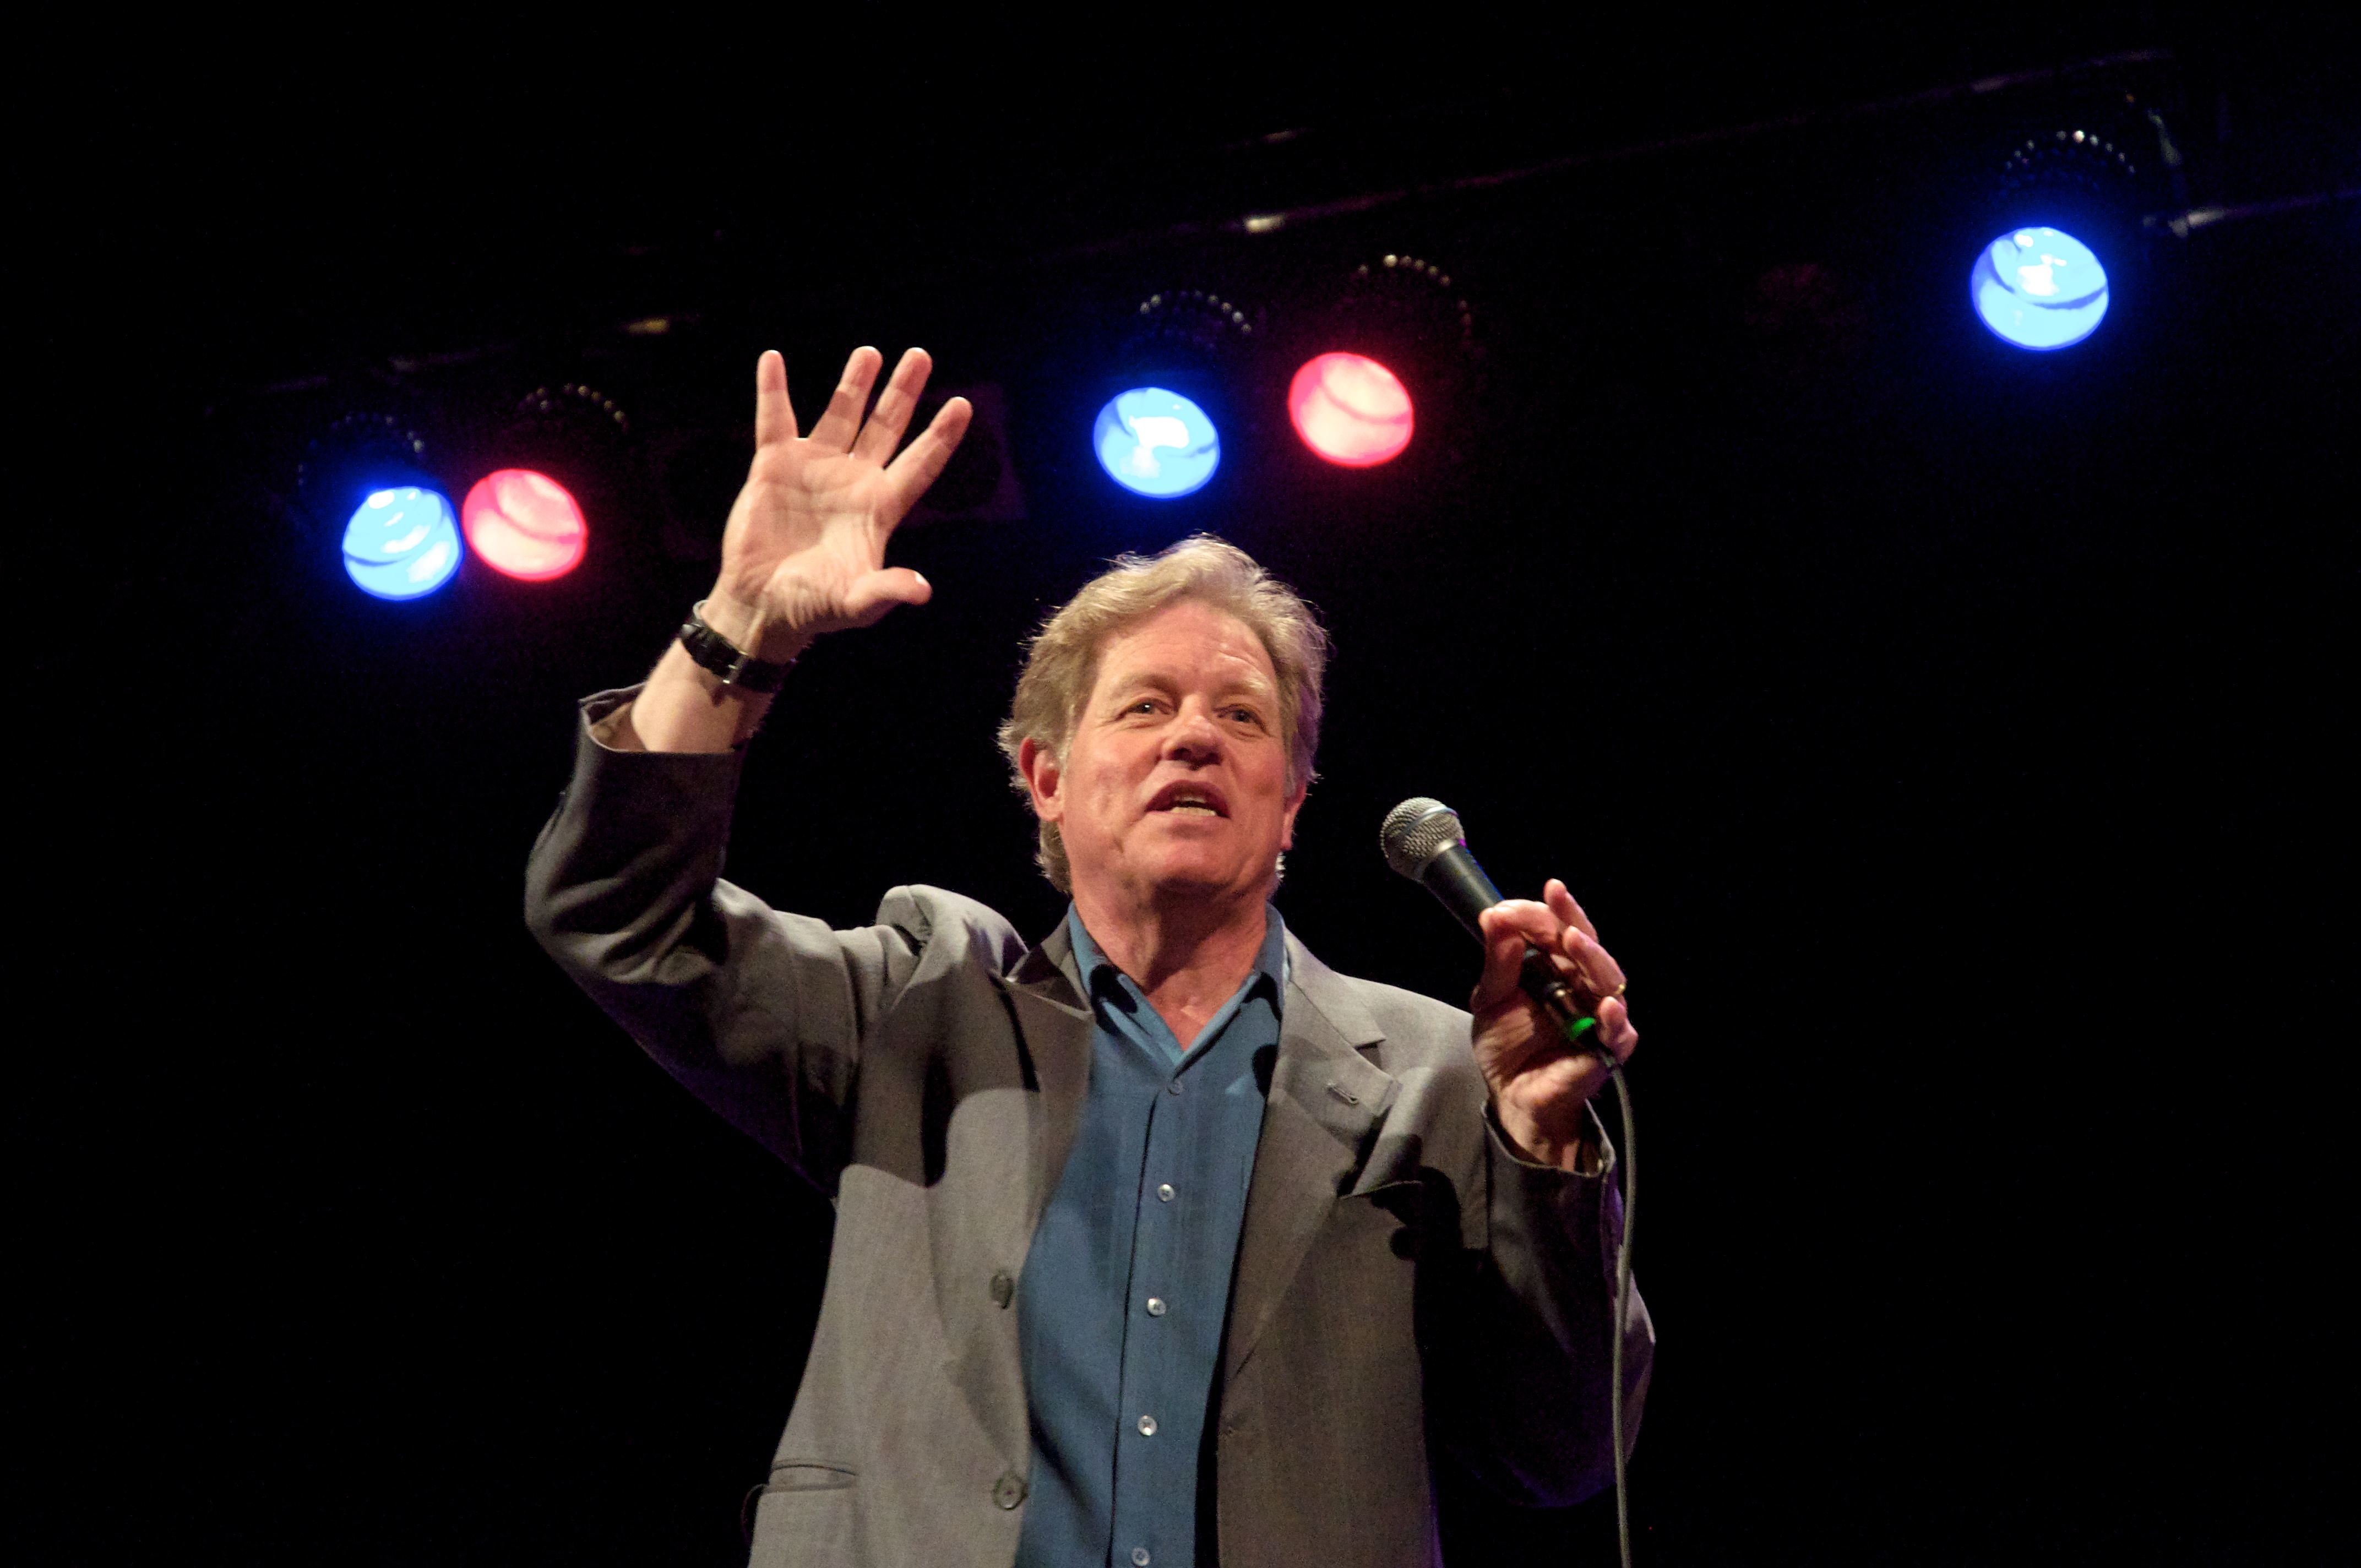 Comedian Jimmy Tingle will host the SCN anniversary gala on May 12, 2015